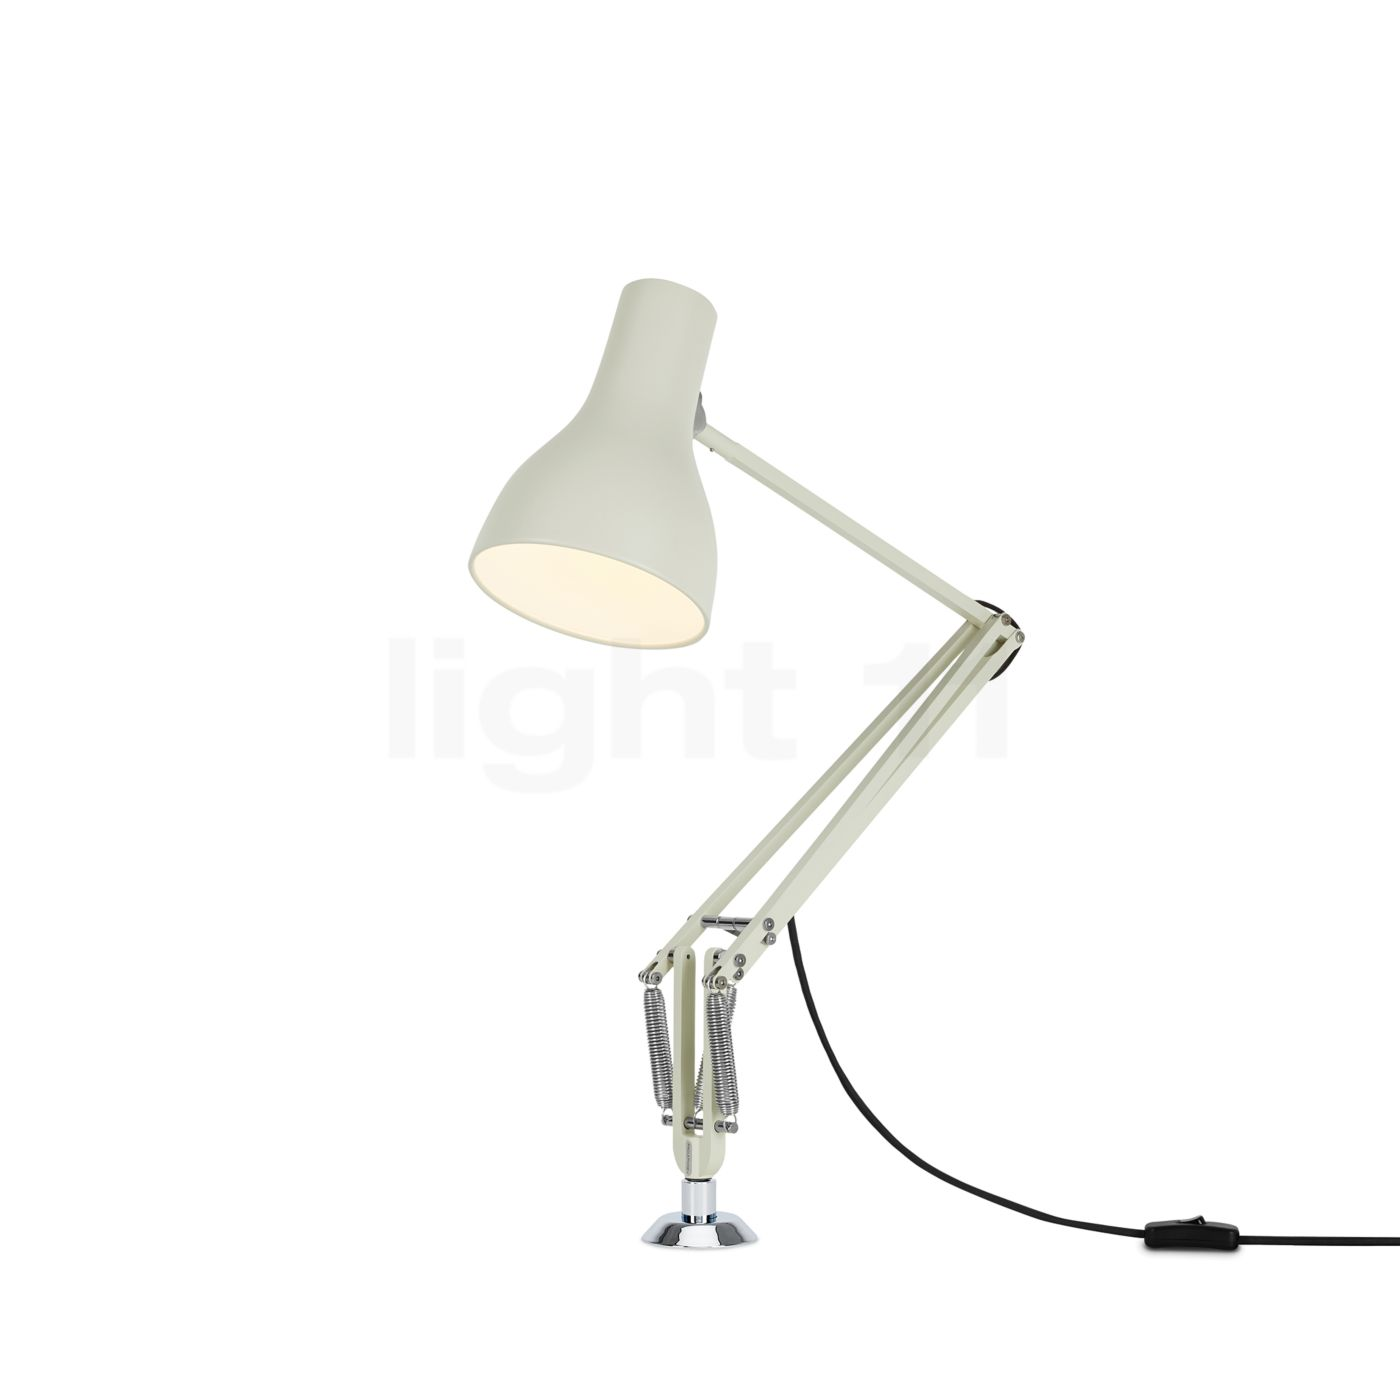 anglepoise type 75 lampe de bureau avec support visser. Black Bedroom Furniture Sets. Home Design Ideas